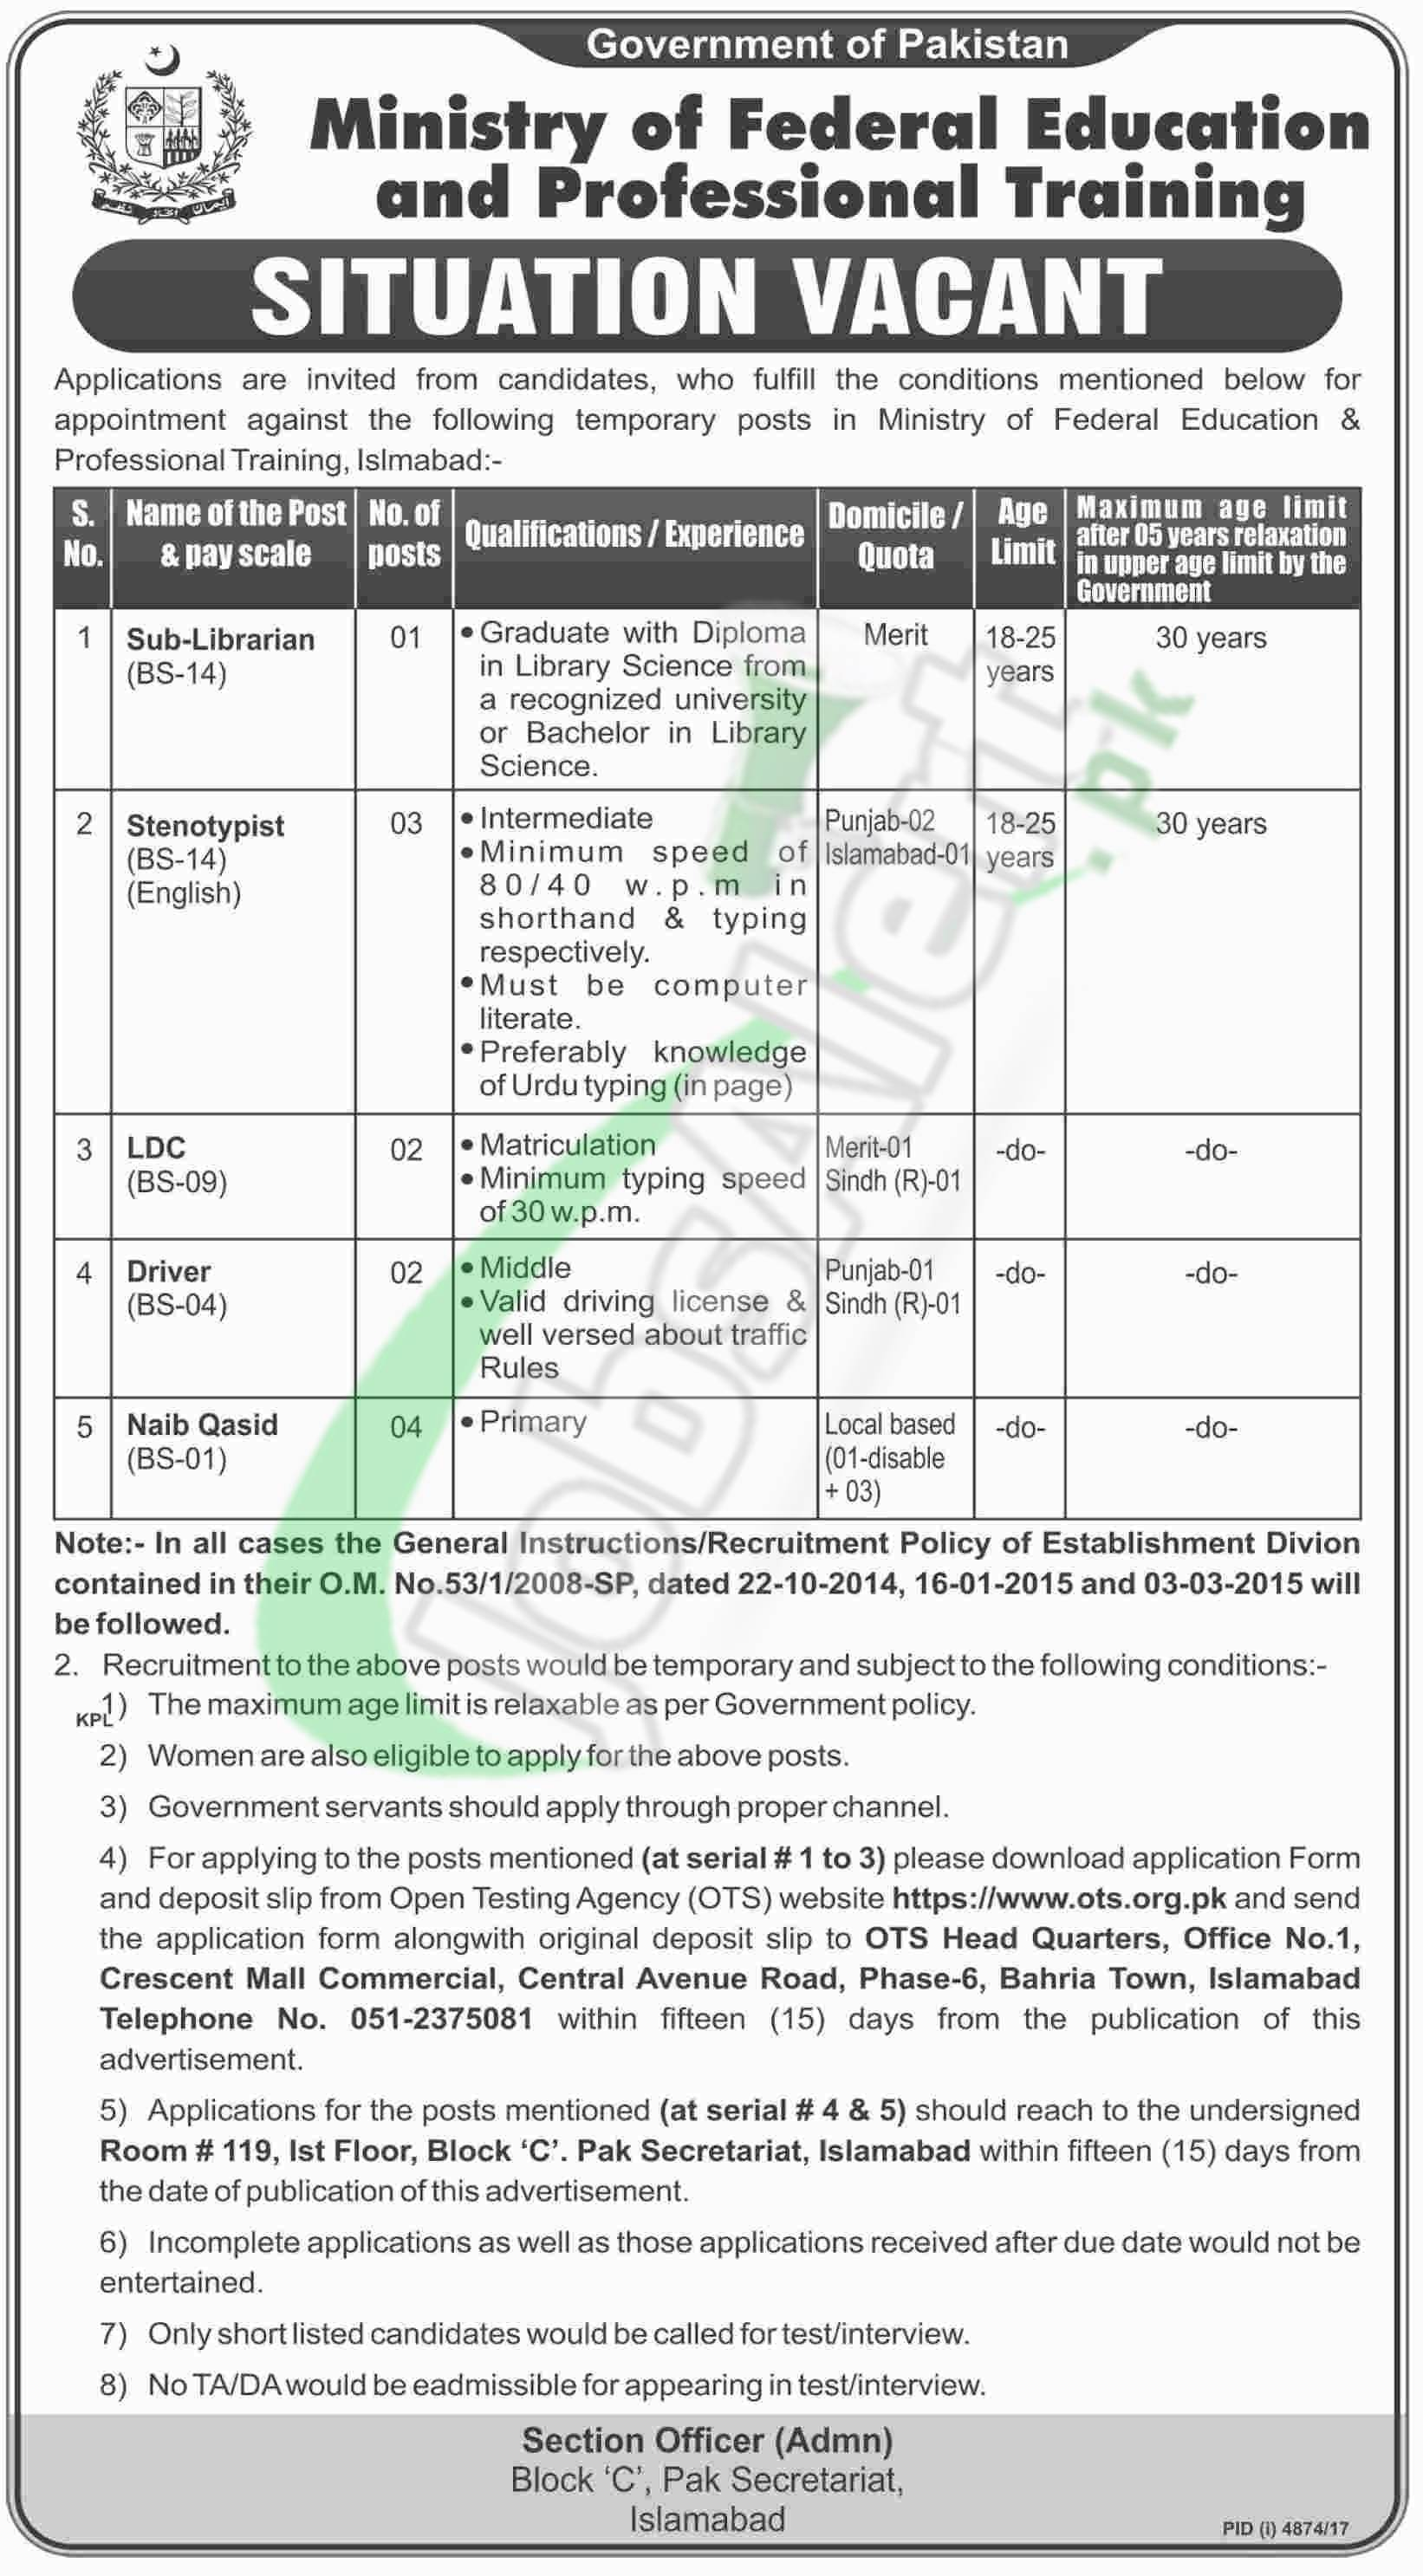 Ministry of Federal Education and Professional Training Jobs 2018